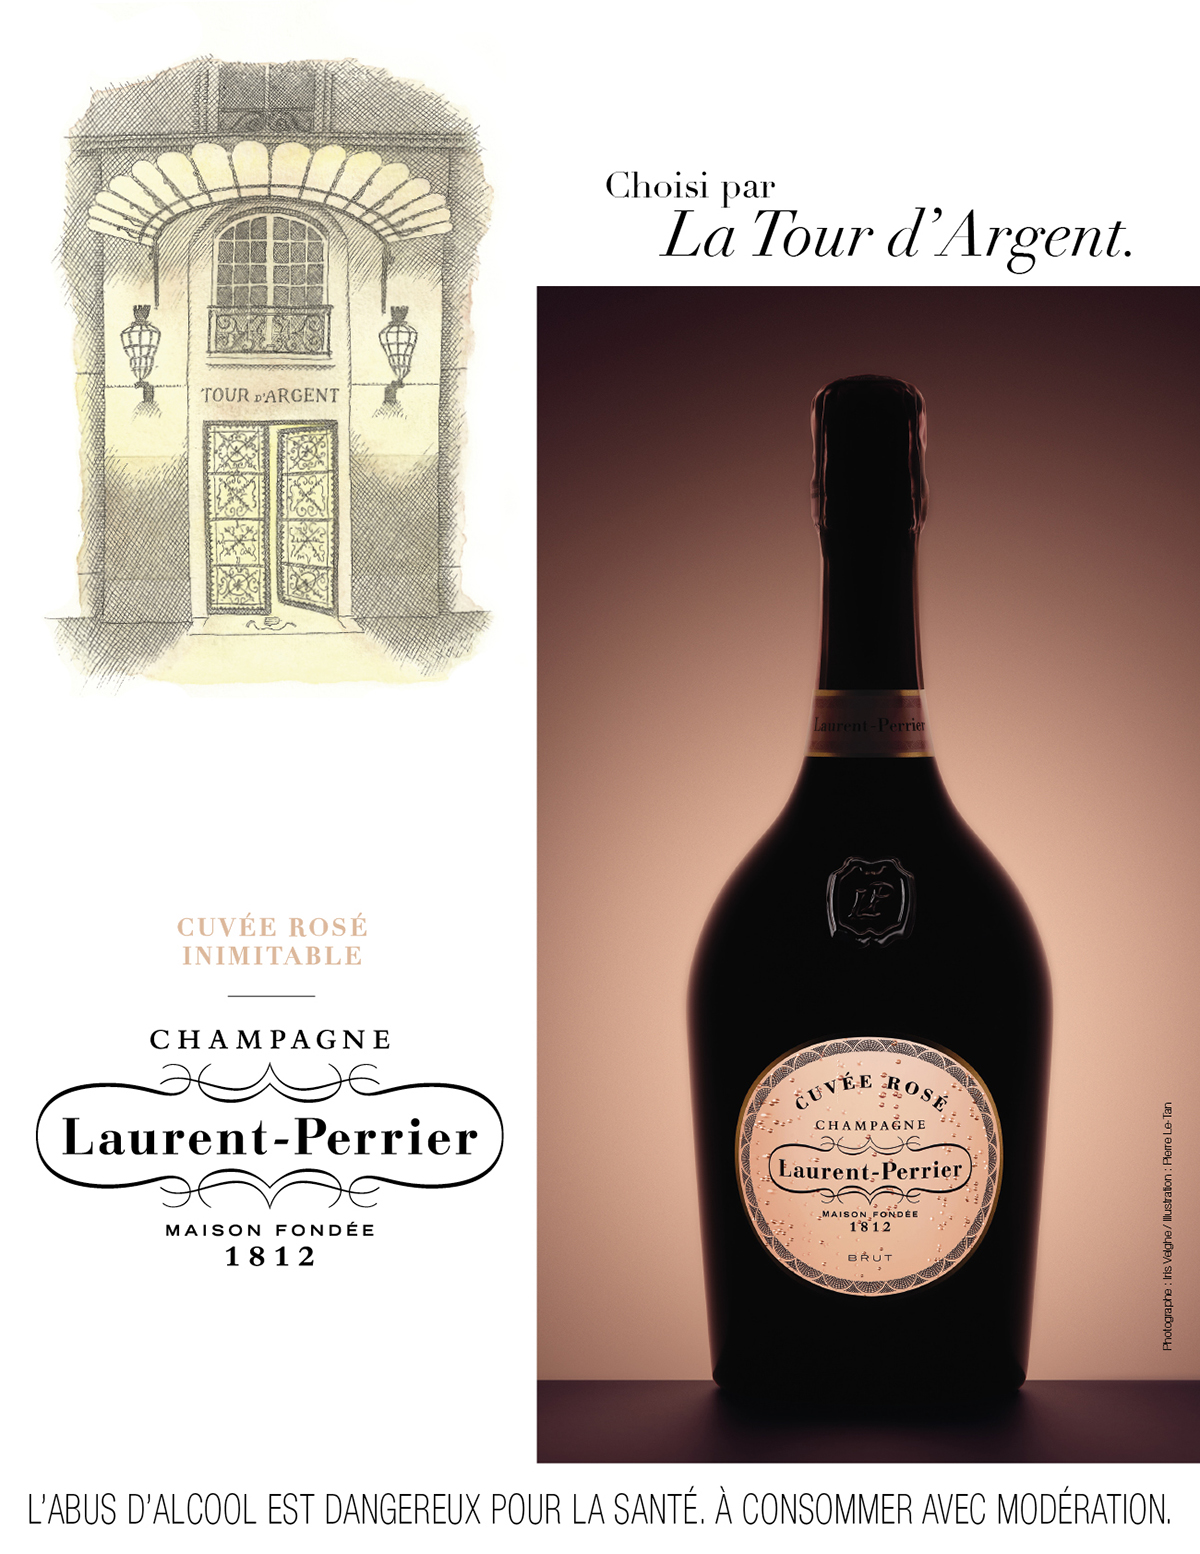 laurent-perrier-champagne-publicite-marketing-ads-cuvee-rose-tour-argent-meurice-gstaad-palace-ritz-dorchester-gavroche-agence-publicis-conseil-1